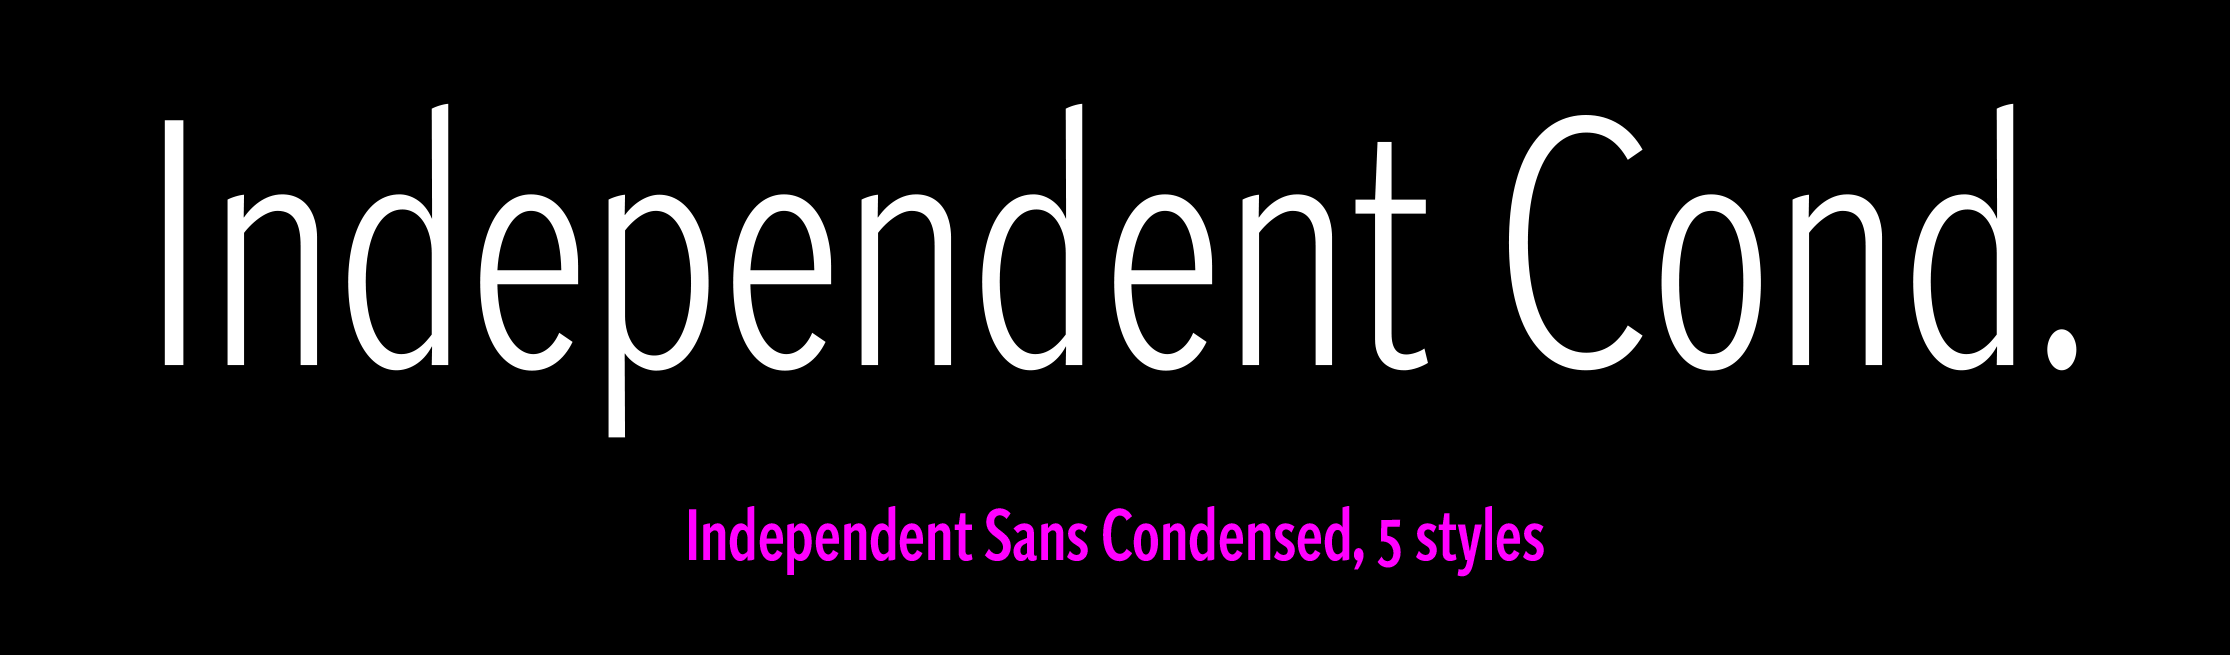 Independent Sans Condensed sample